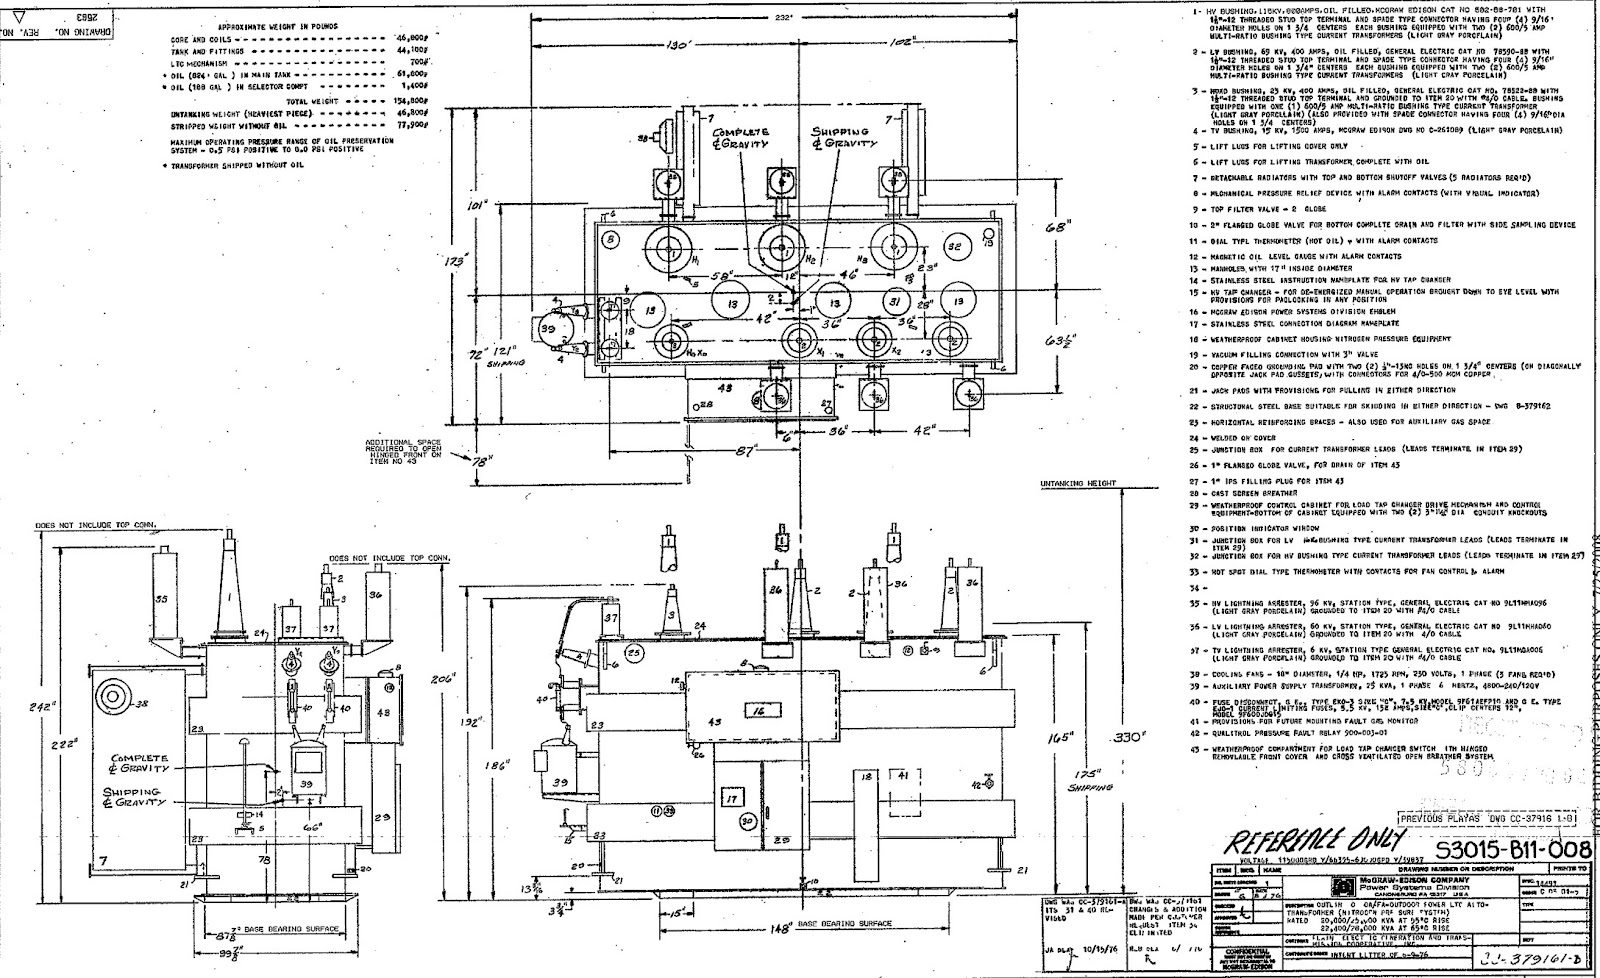 DIAGRAM] 480 Volt Transformers Wiring Diagrams FULL Version HD Quality Wiring  Diagrams - MILLAUSUSPENSIONBRIDGE.LOGECO.FRlogeco.fr